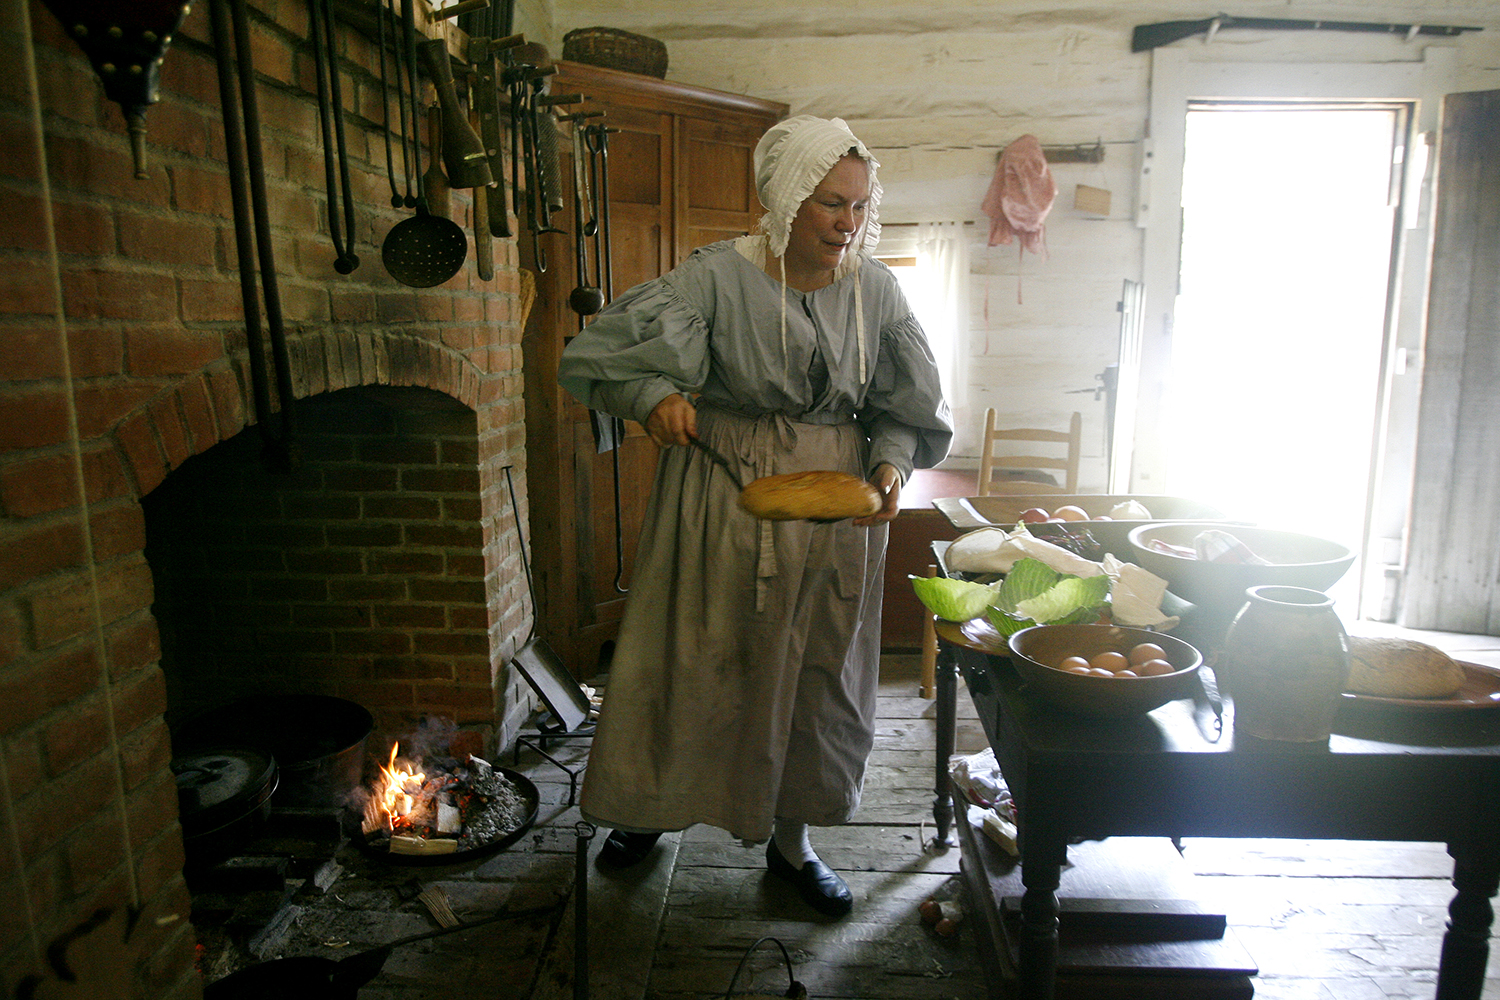 """Carol Ortery of Galesburg removes a warm loaf of wheat bread, or """"cake"""" as it was referred to, from the open hearth fireplace. Having fresh wheat to make bread was considered a treat for residents of New Salem. Ortery also was preparing steamed duck and chicken stuffed with onion, cloves and cabbage. File/The State Journal-Register"""